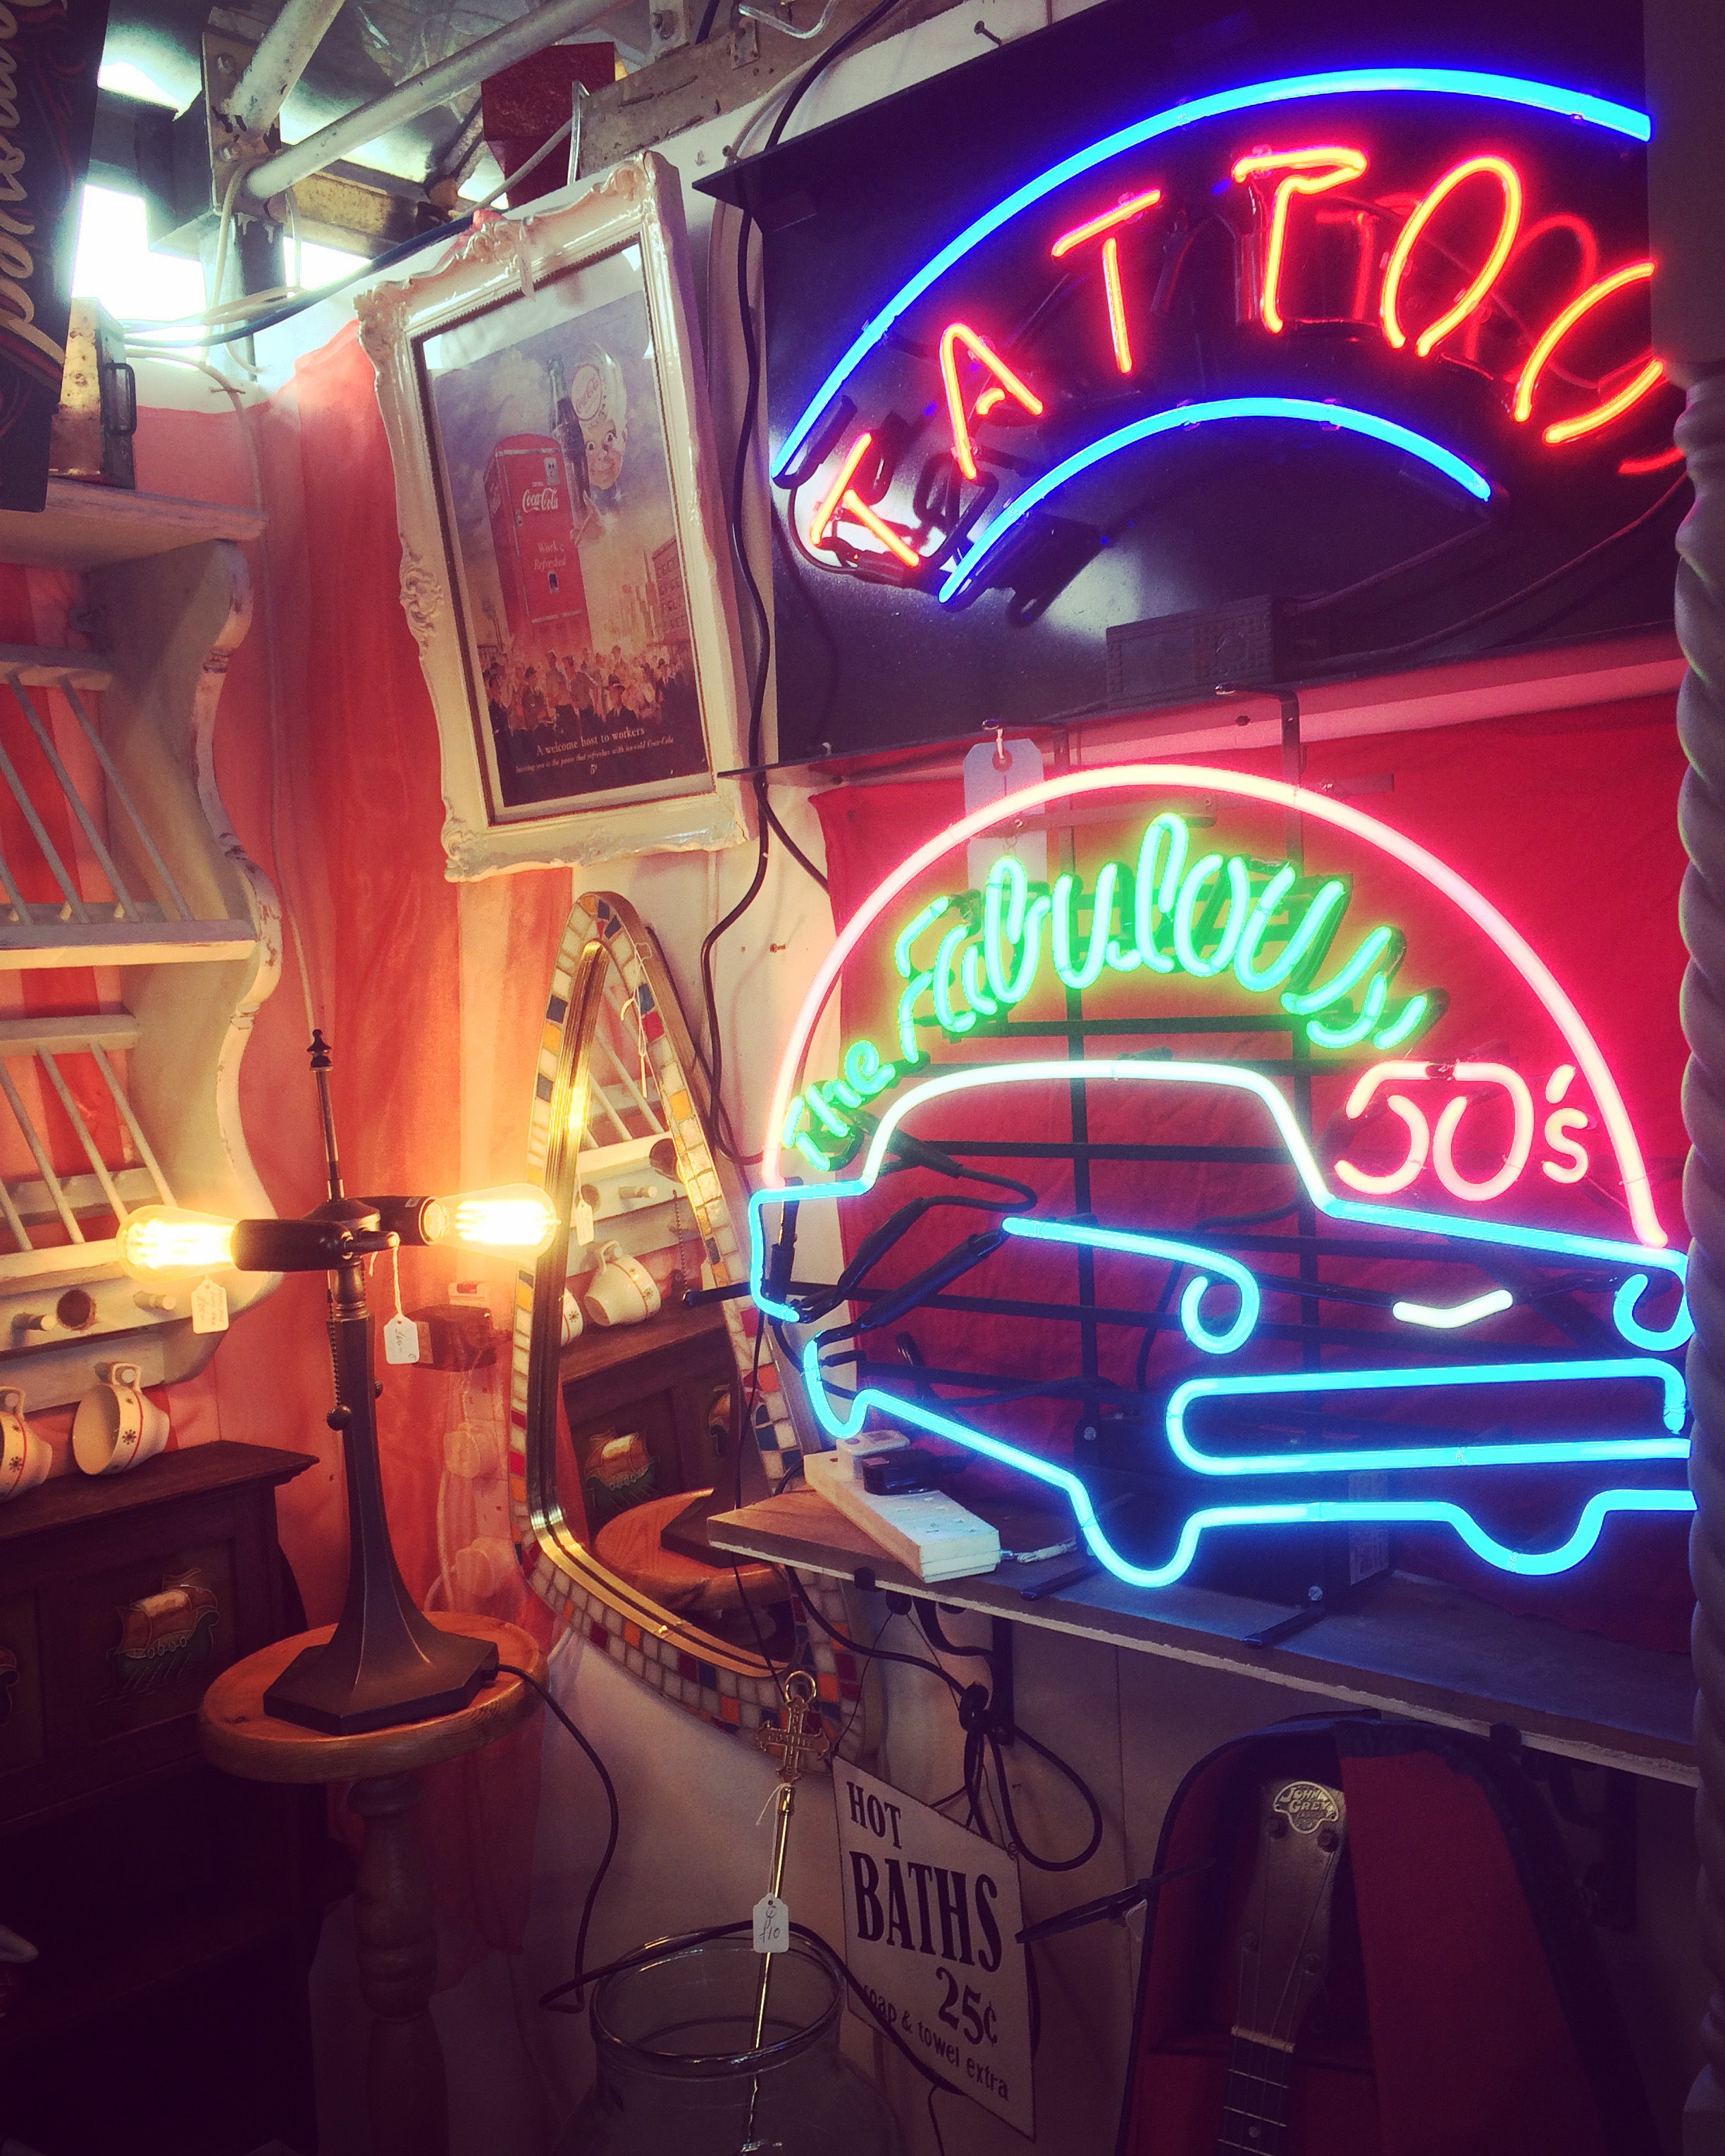 Tatoo sign